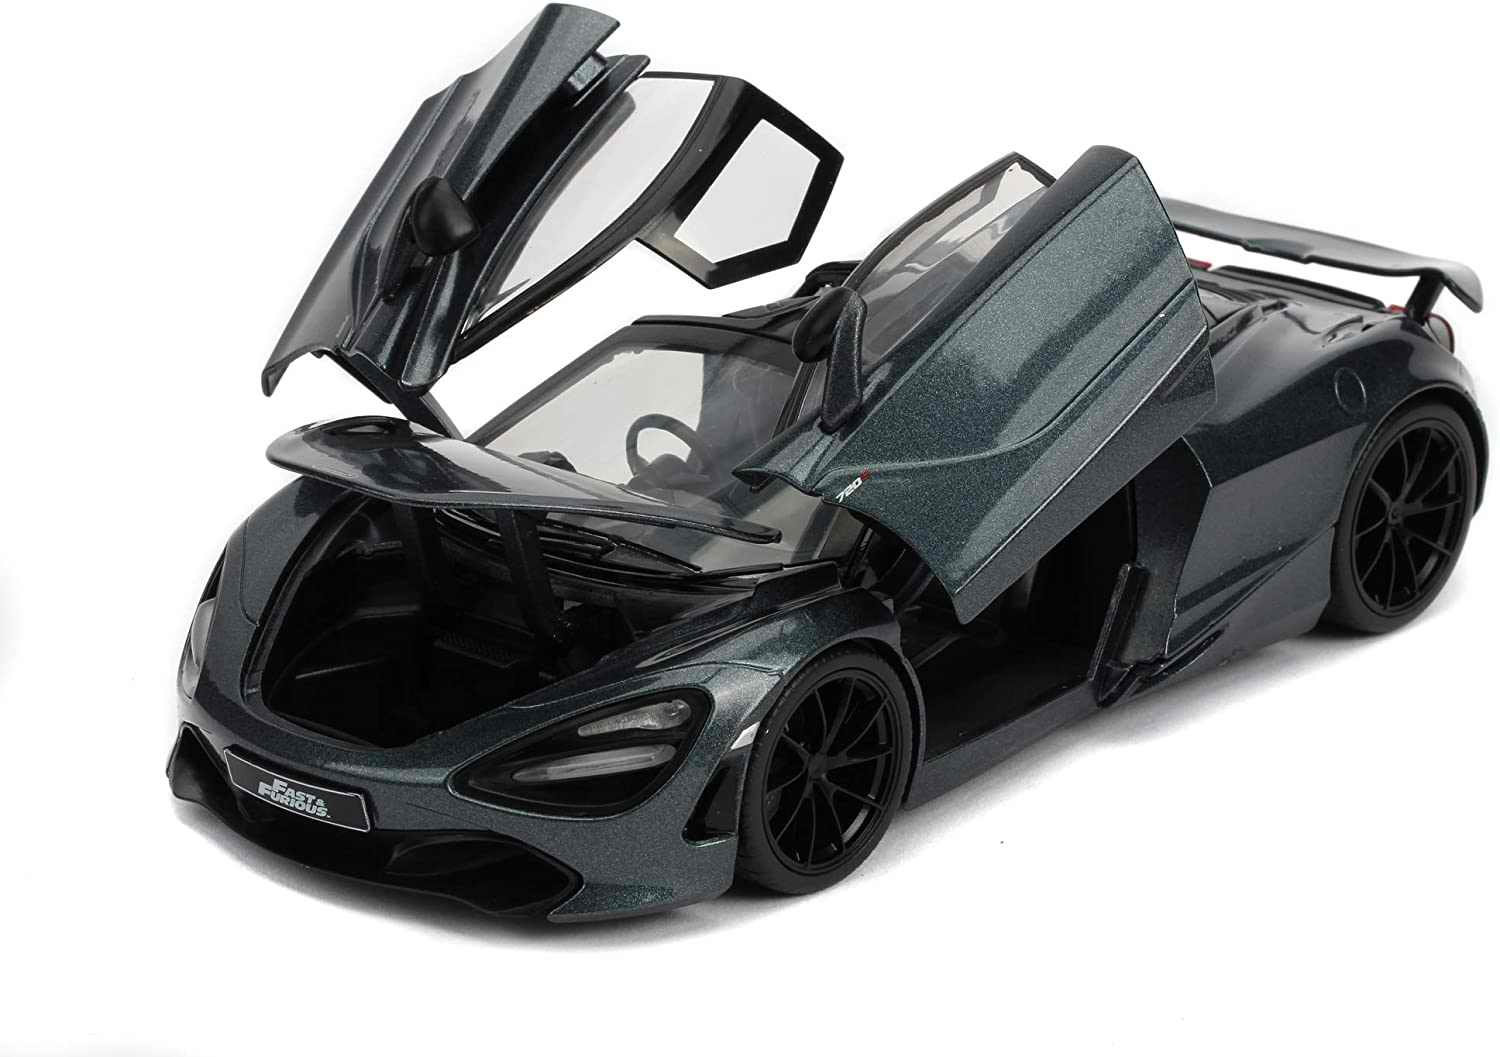 MCLAREN 720S FAST AND FURIOUS HOBBS AND SHAW 2019 Voiture de Collection au 1/24